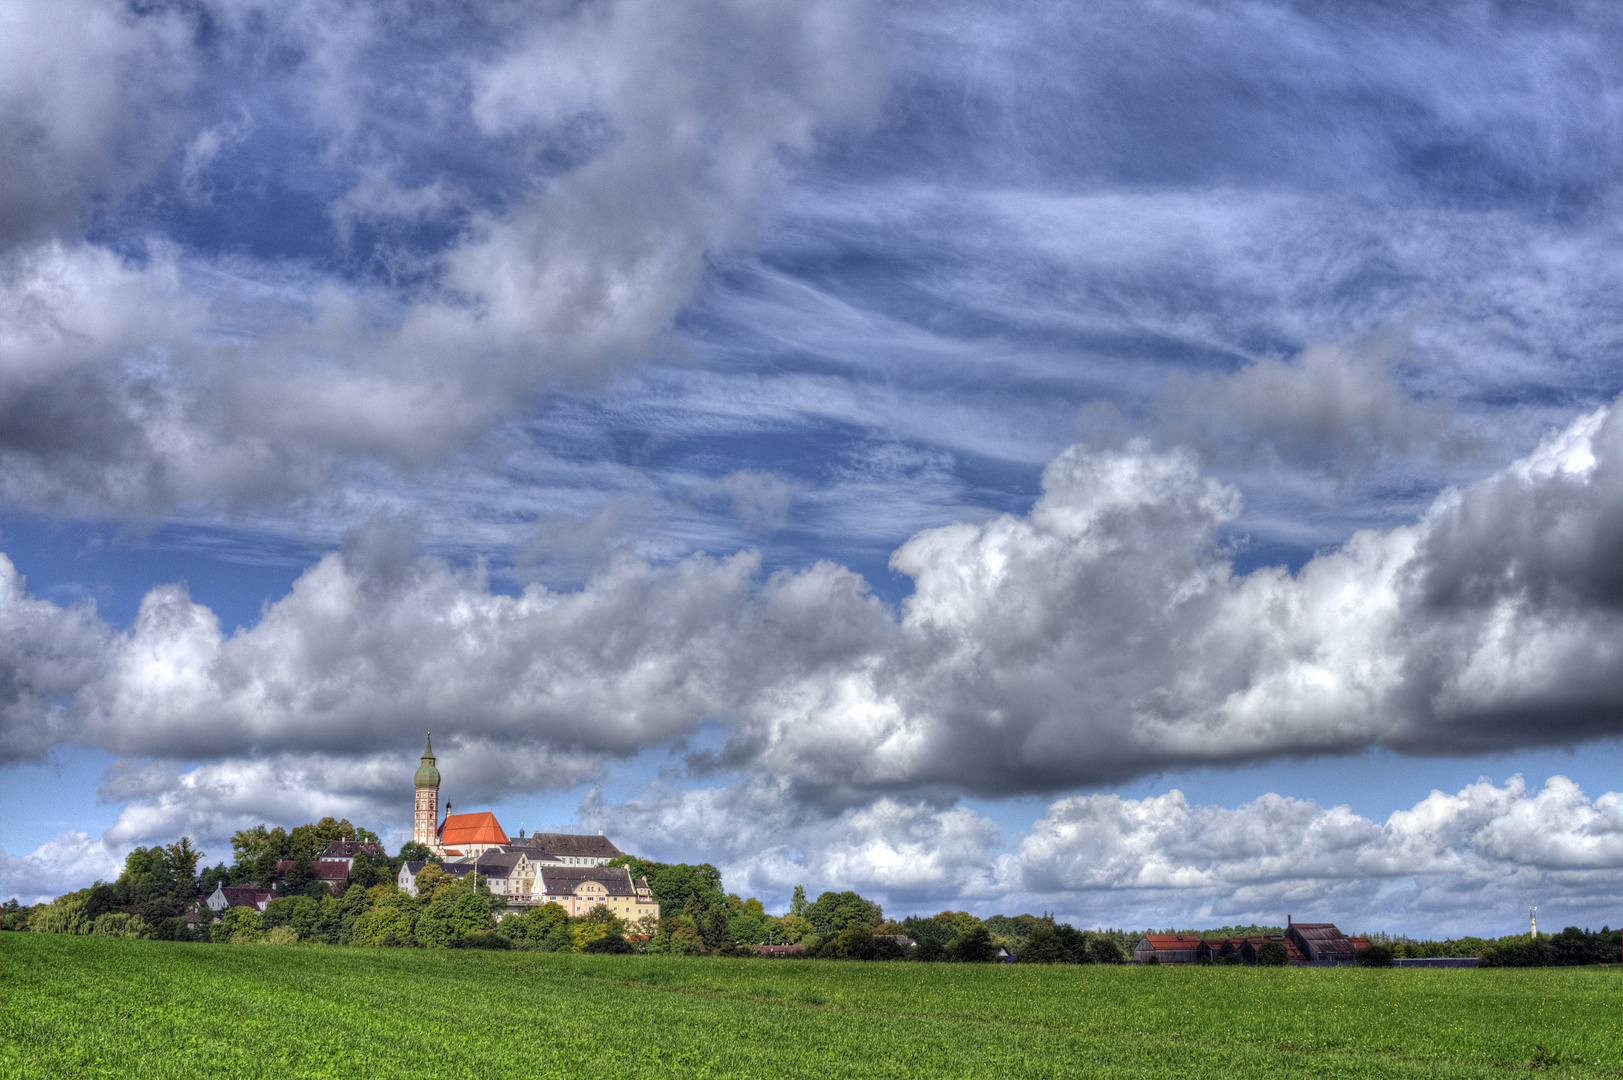 Kloster Andechs III HDR